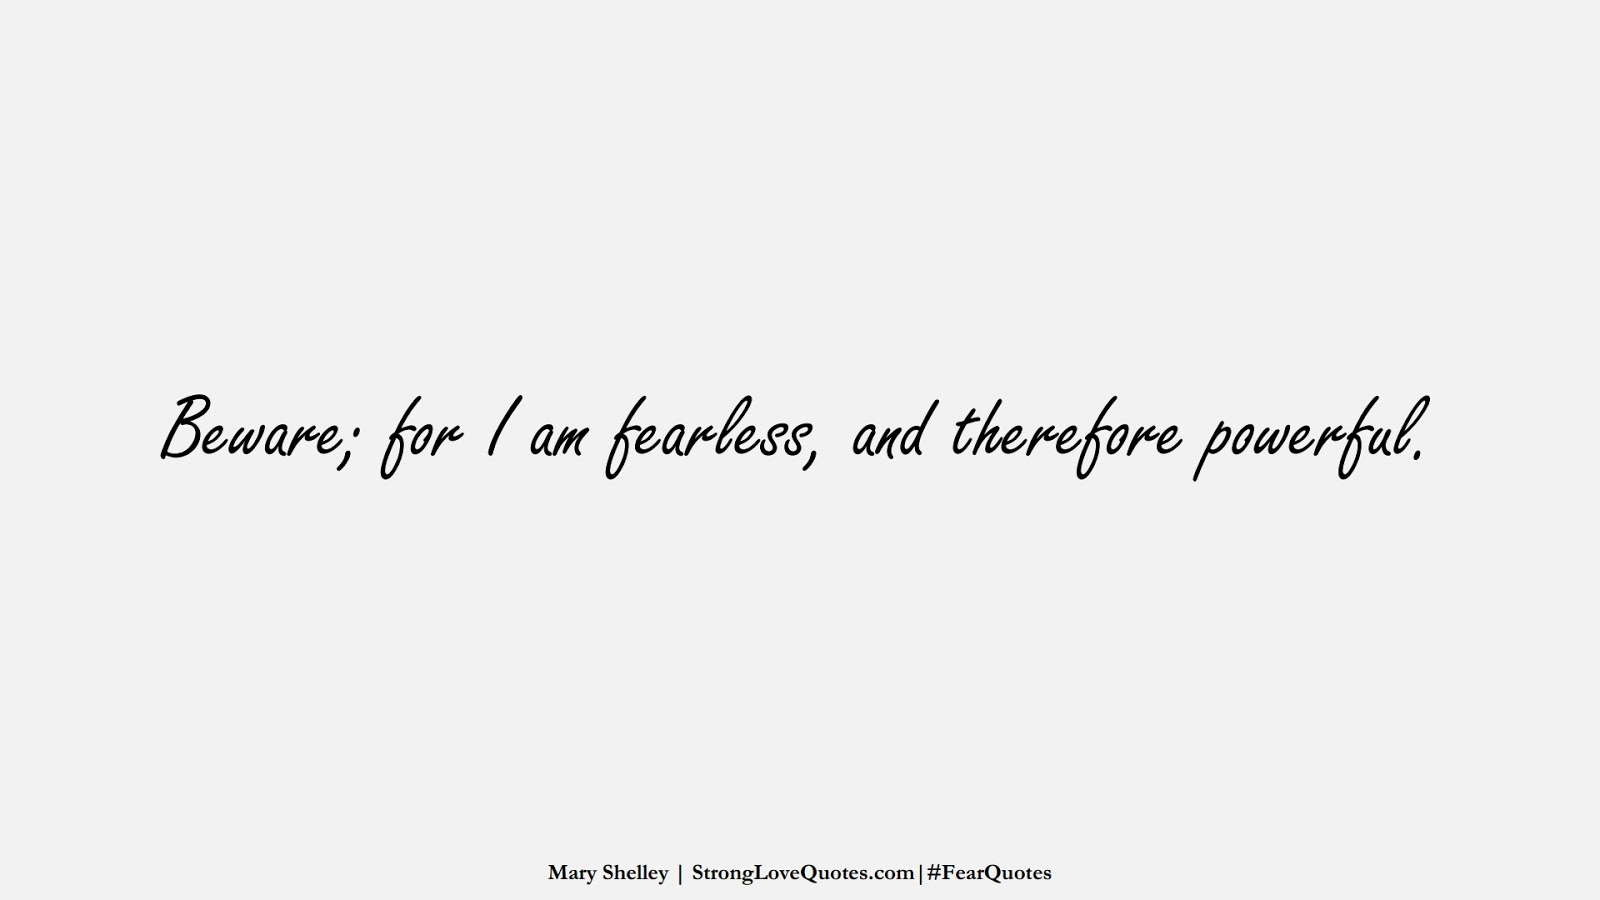 Beware; for I am fearless, and therefore powerful. (Mary Shelley);  #FearQuotes